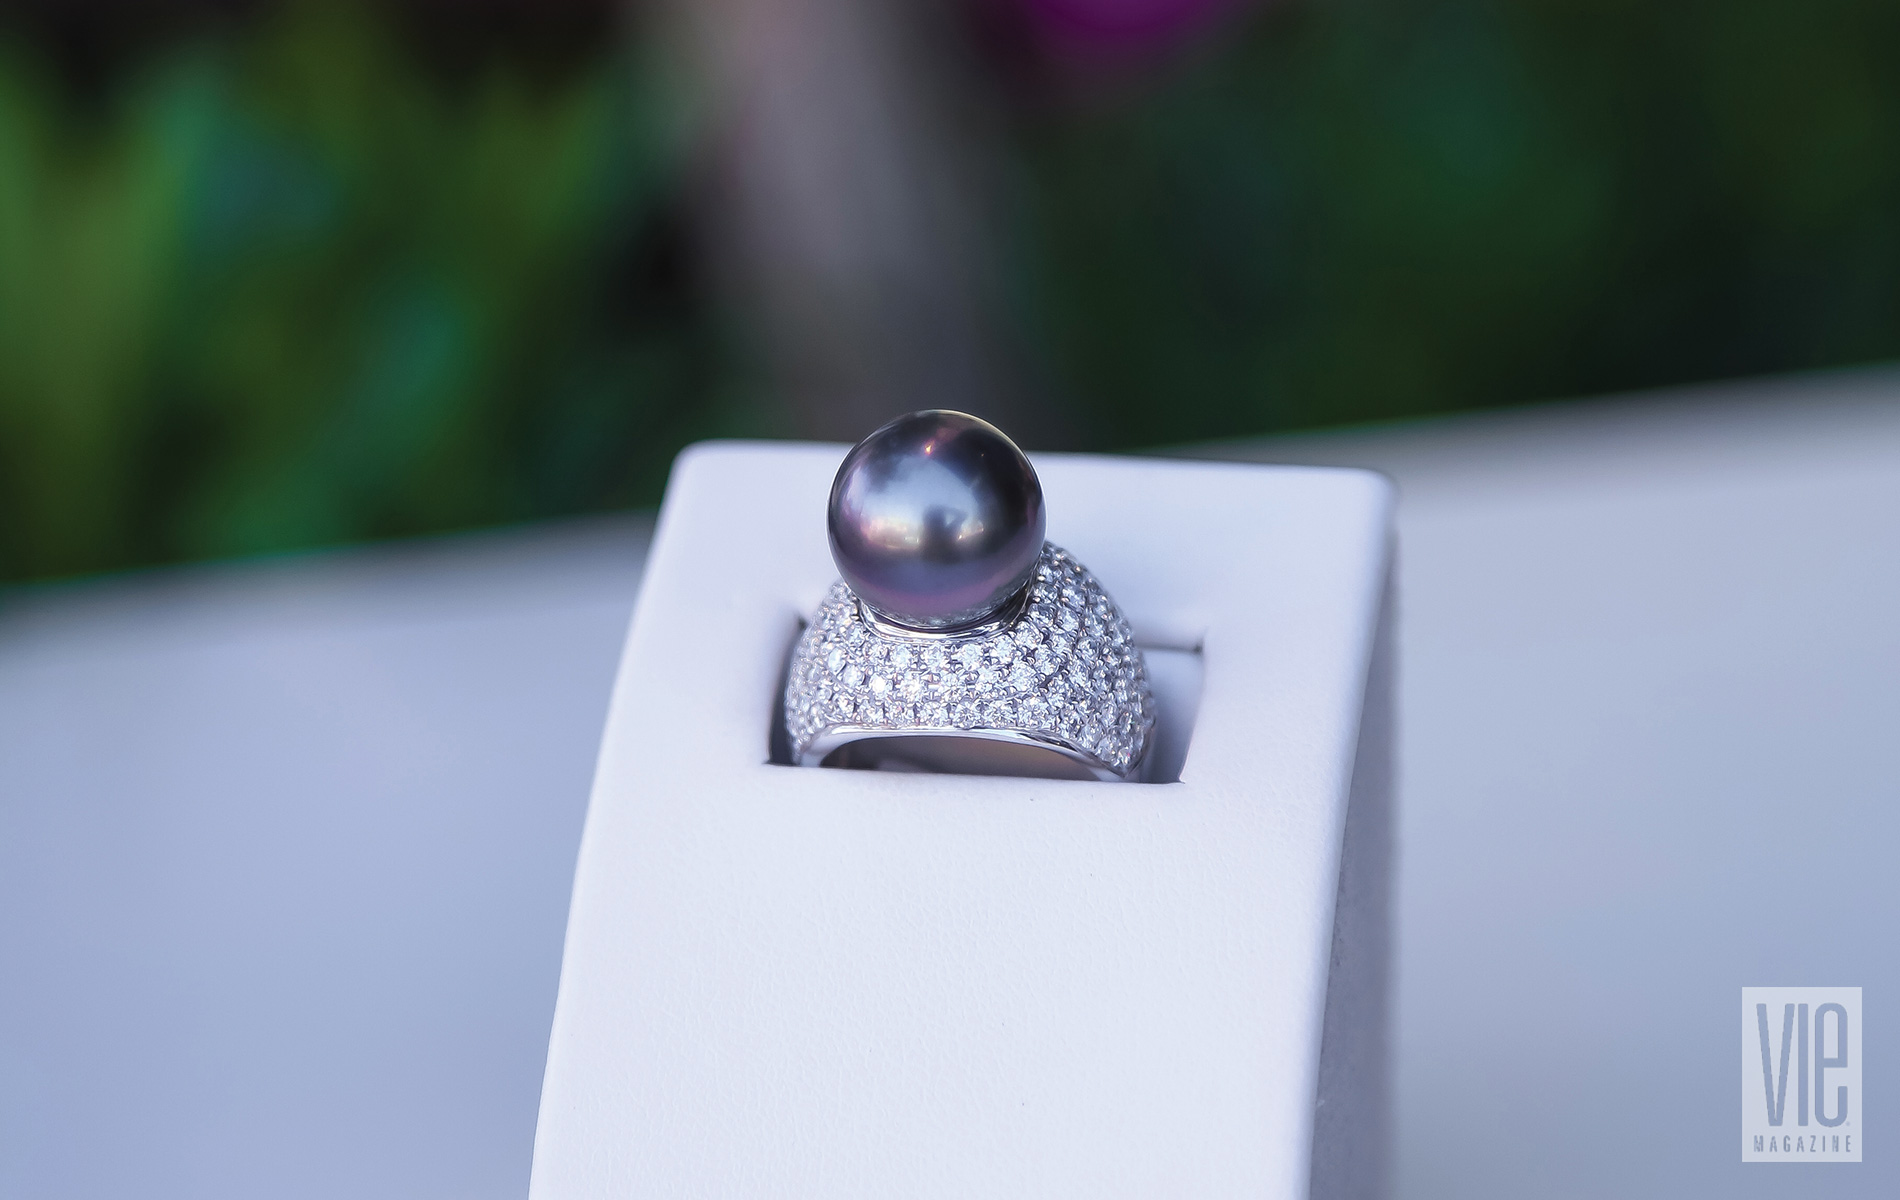 A Big Black Pearl Cocktail Ring Surrounded By A Setting Of Pave Diamonds Resting On A Ring Case